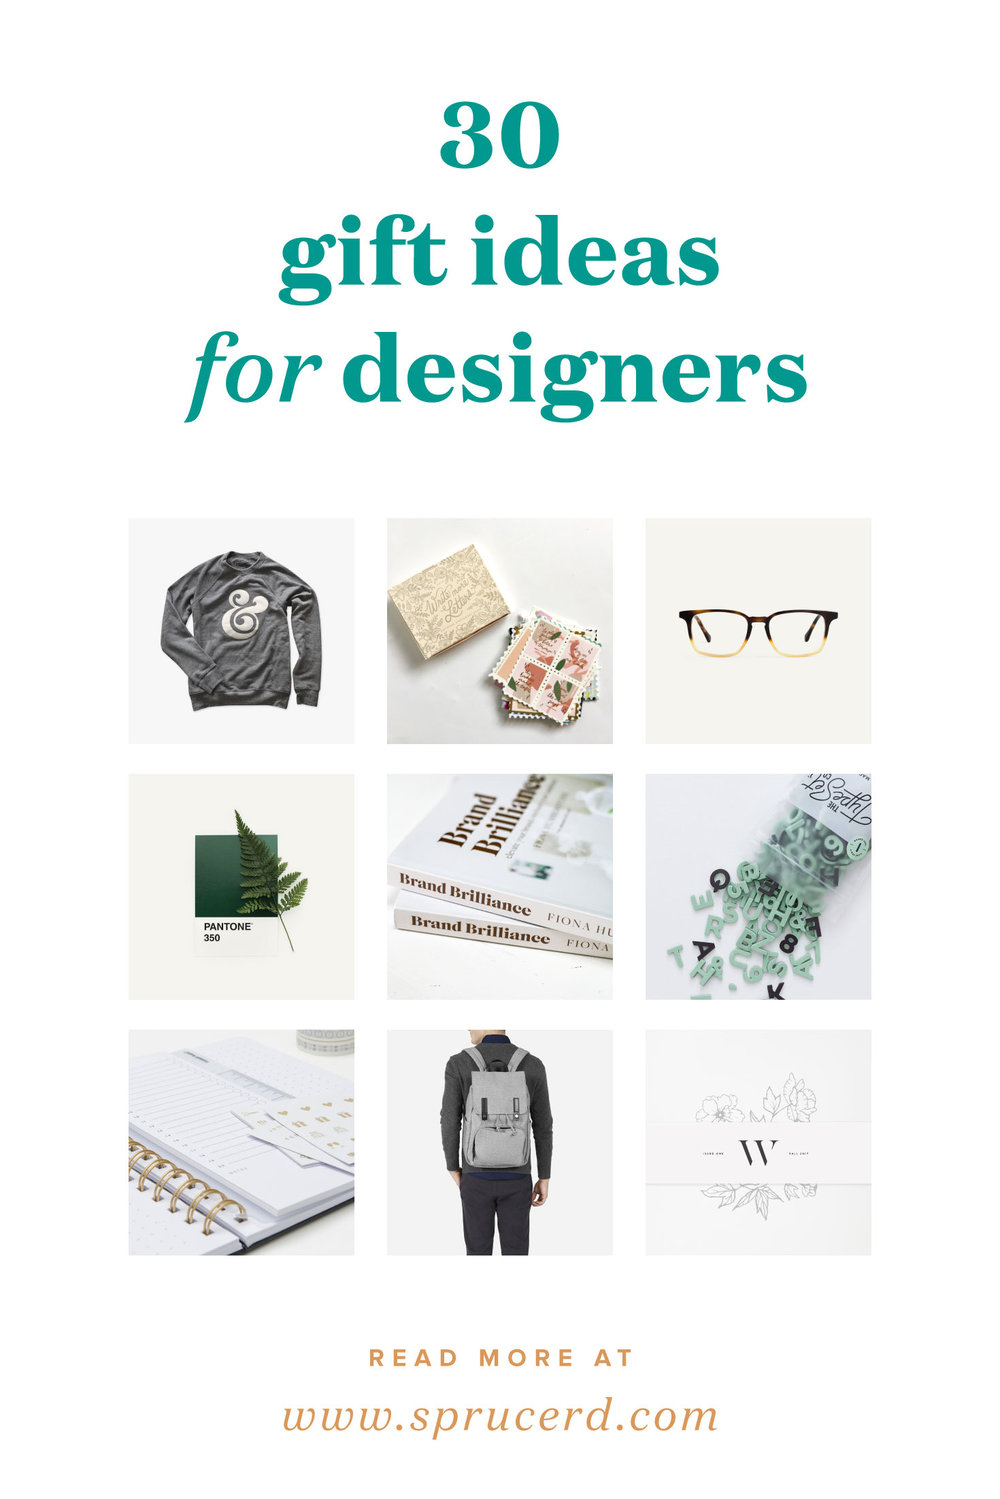 30 gift ideas for graphic designers — Christmas gifts, fonts, tools, freelance resources, etc. | Spruce Rd.